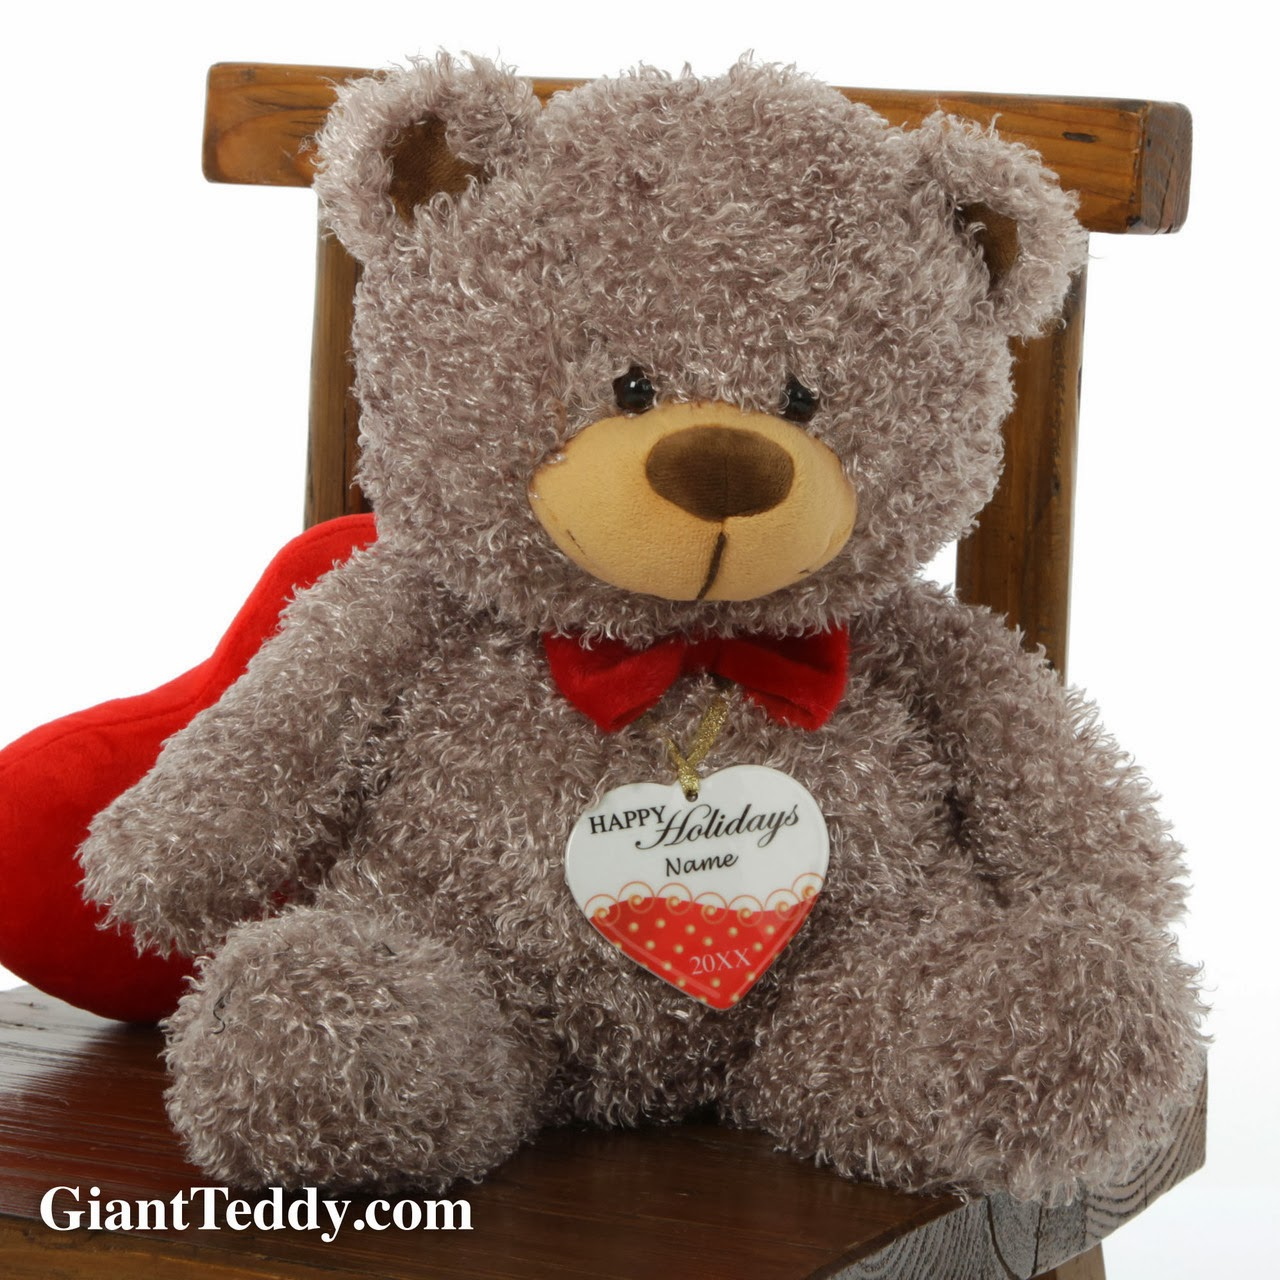 Giant Teddy Buster Shags Personalized Ornament Gift Set